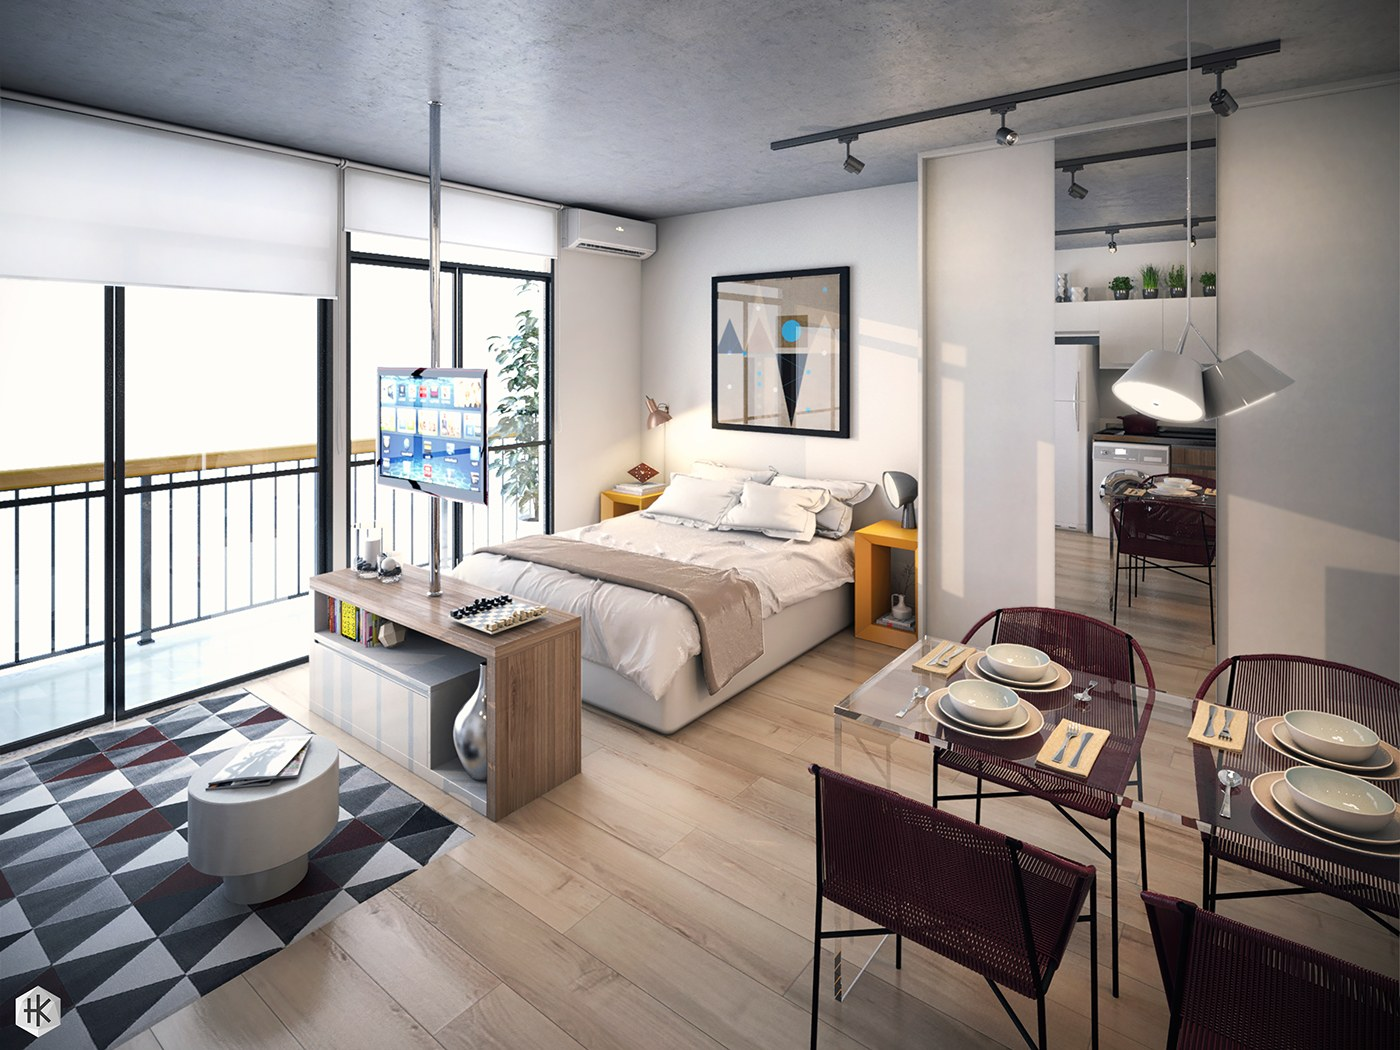 5 small studio apartments with beautiful design - Interior Design Small Apartments